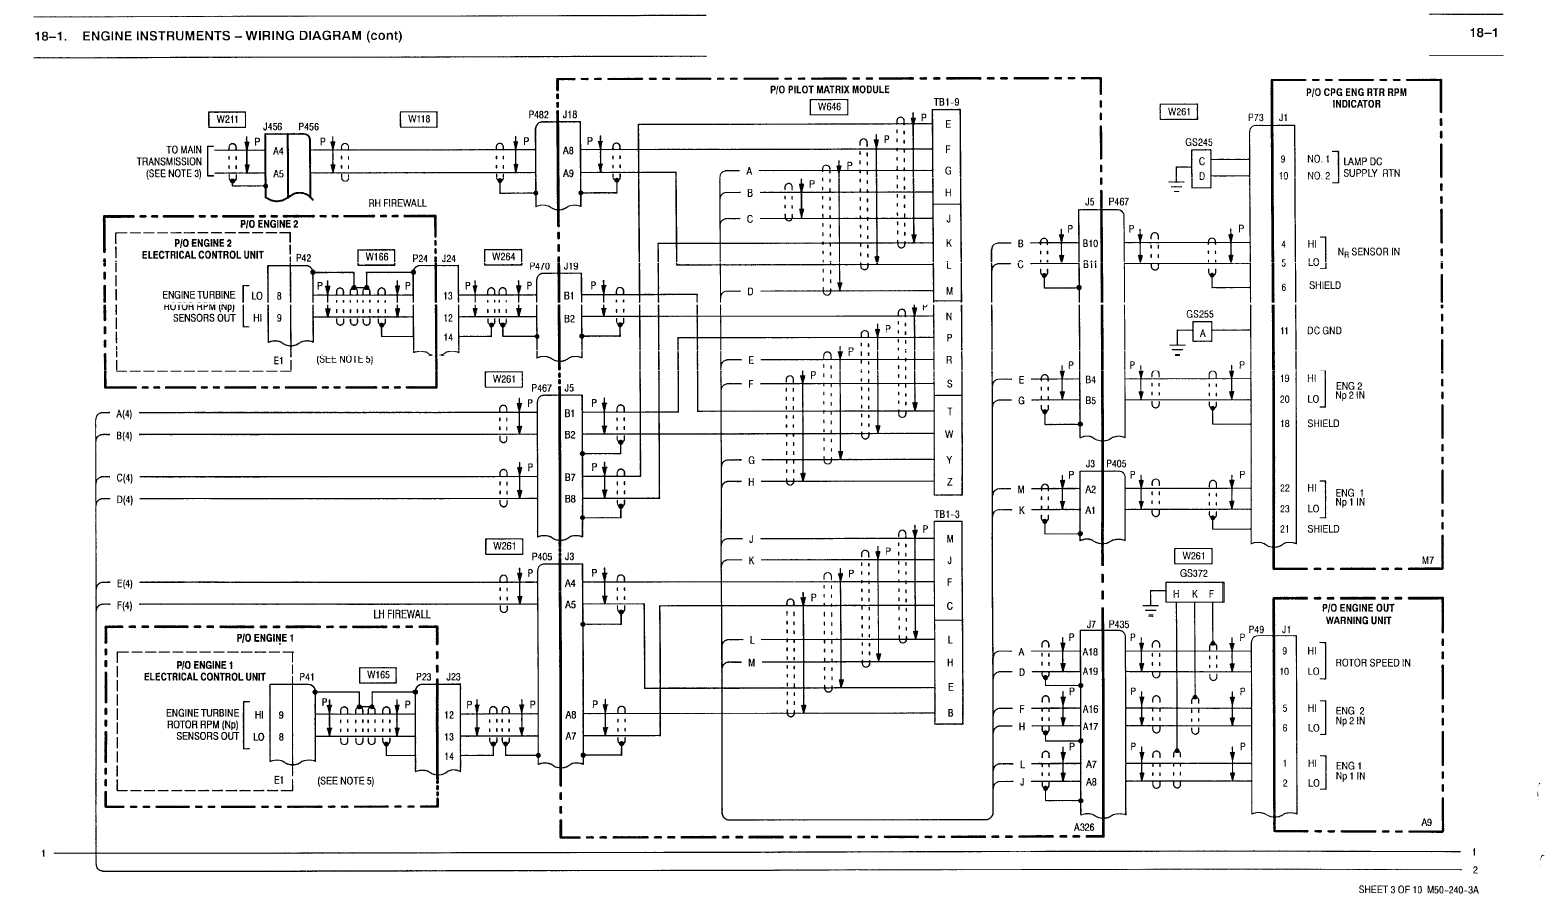 18 1 Engine Instruments Wiring Diagram Cont